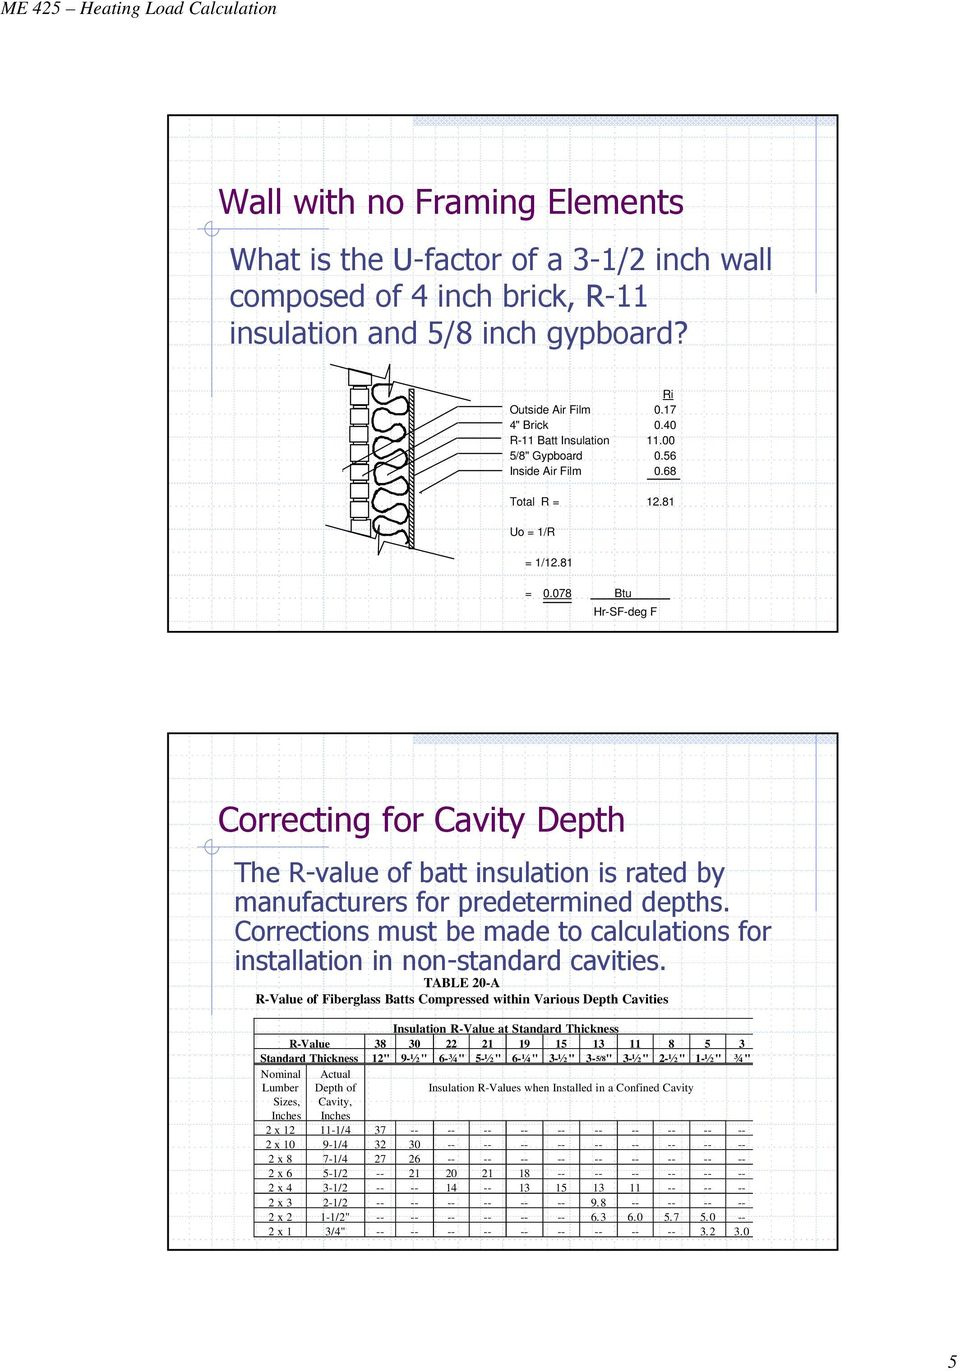 078 Btu Hr-SF-deg F Correcting for Cavity Depth The R-value of batt insulation is rated by manufacturers for predetermined depths.